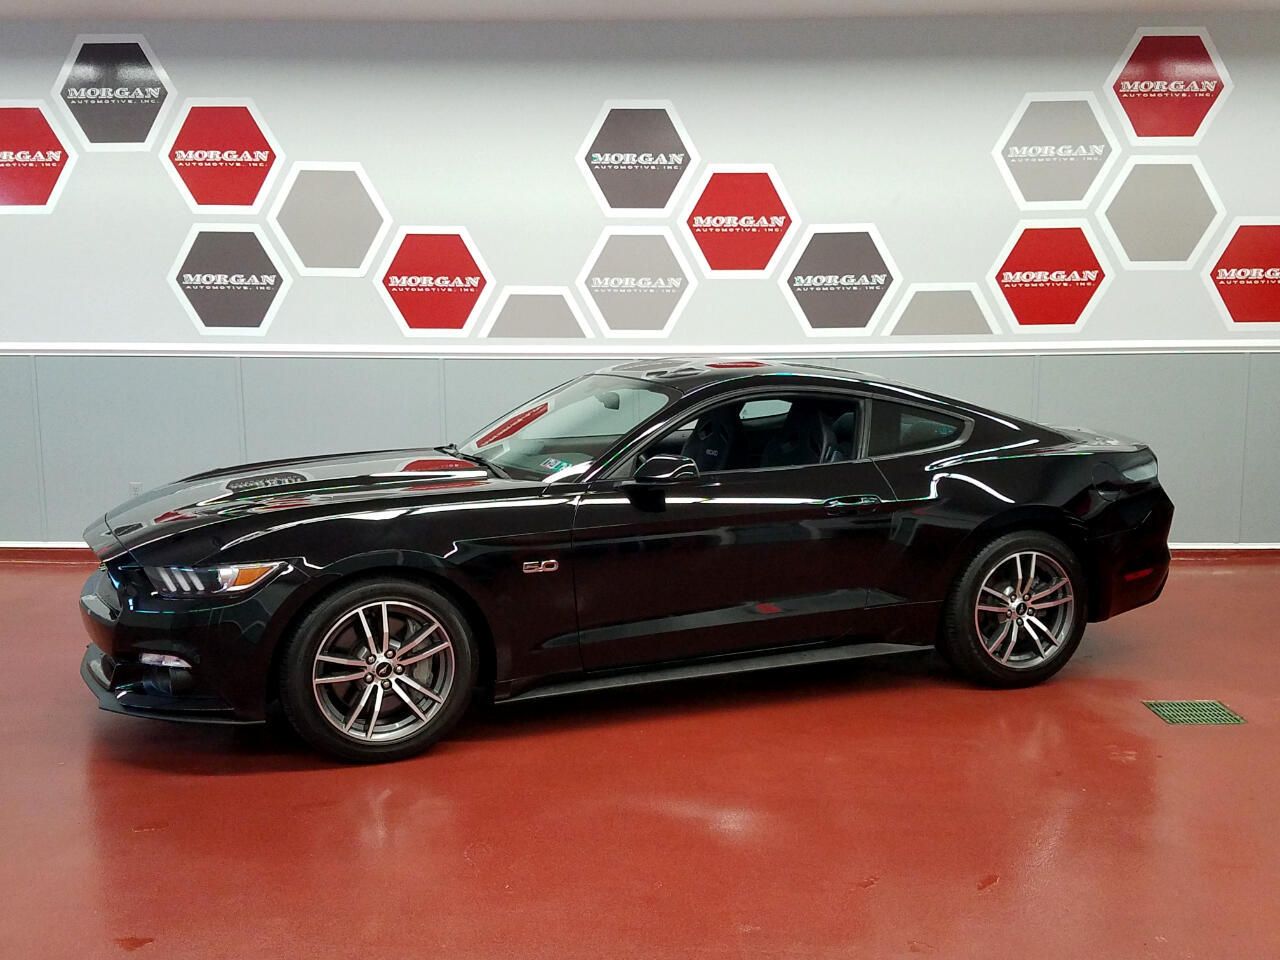 Used 2015 Ford Mustang Gt Coupe For Sale In Lancaster Pa 17545 Morgan Automotive